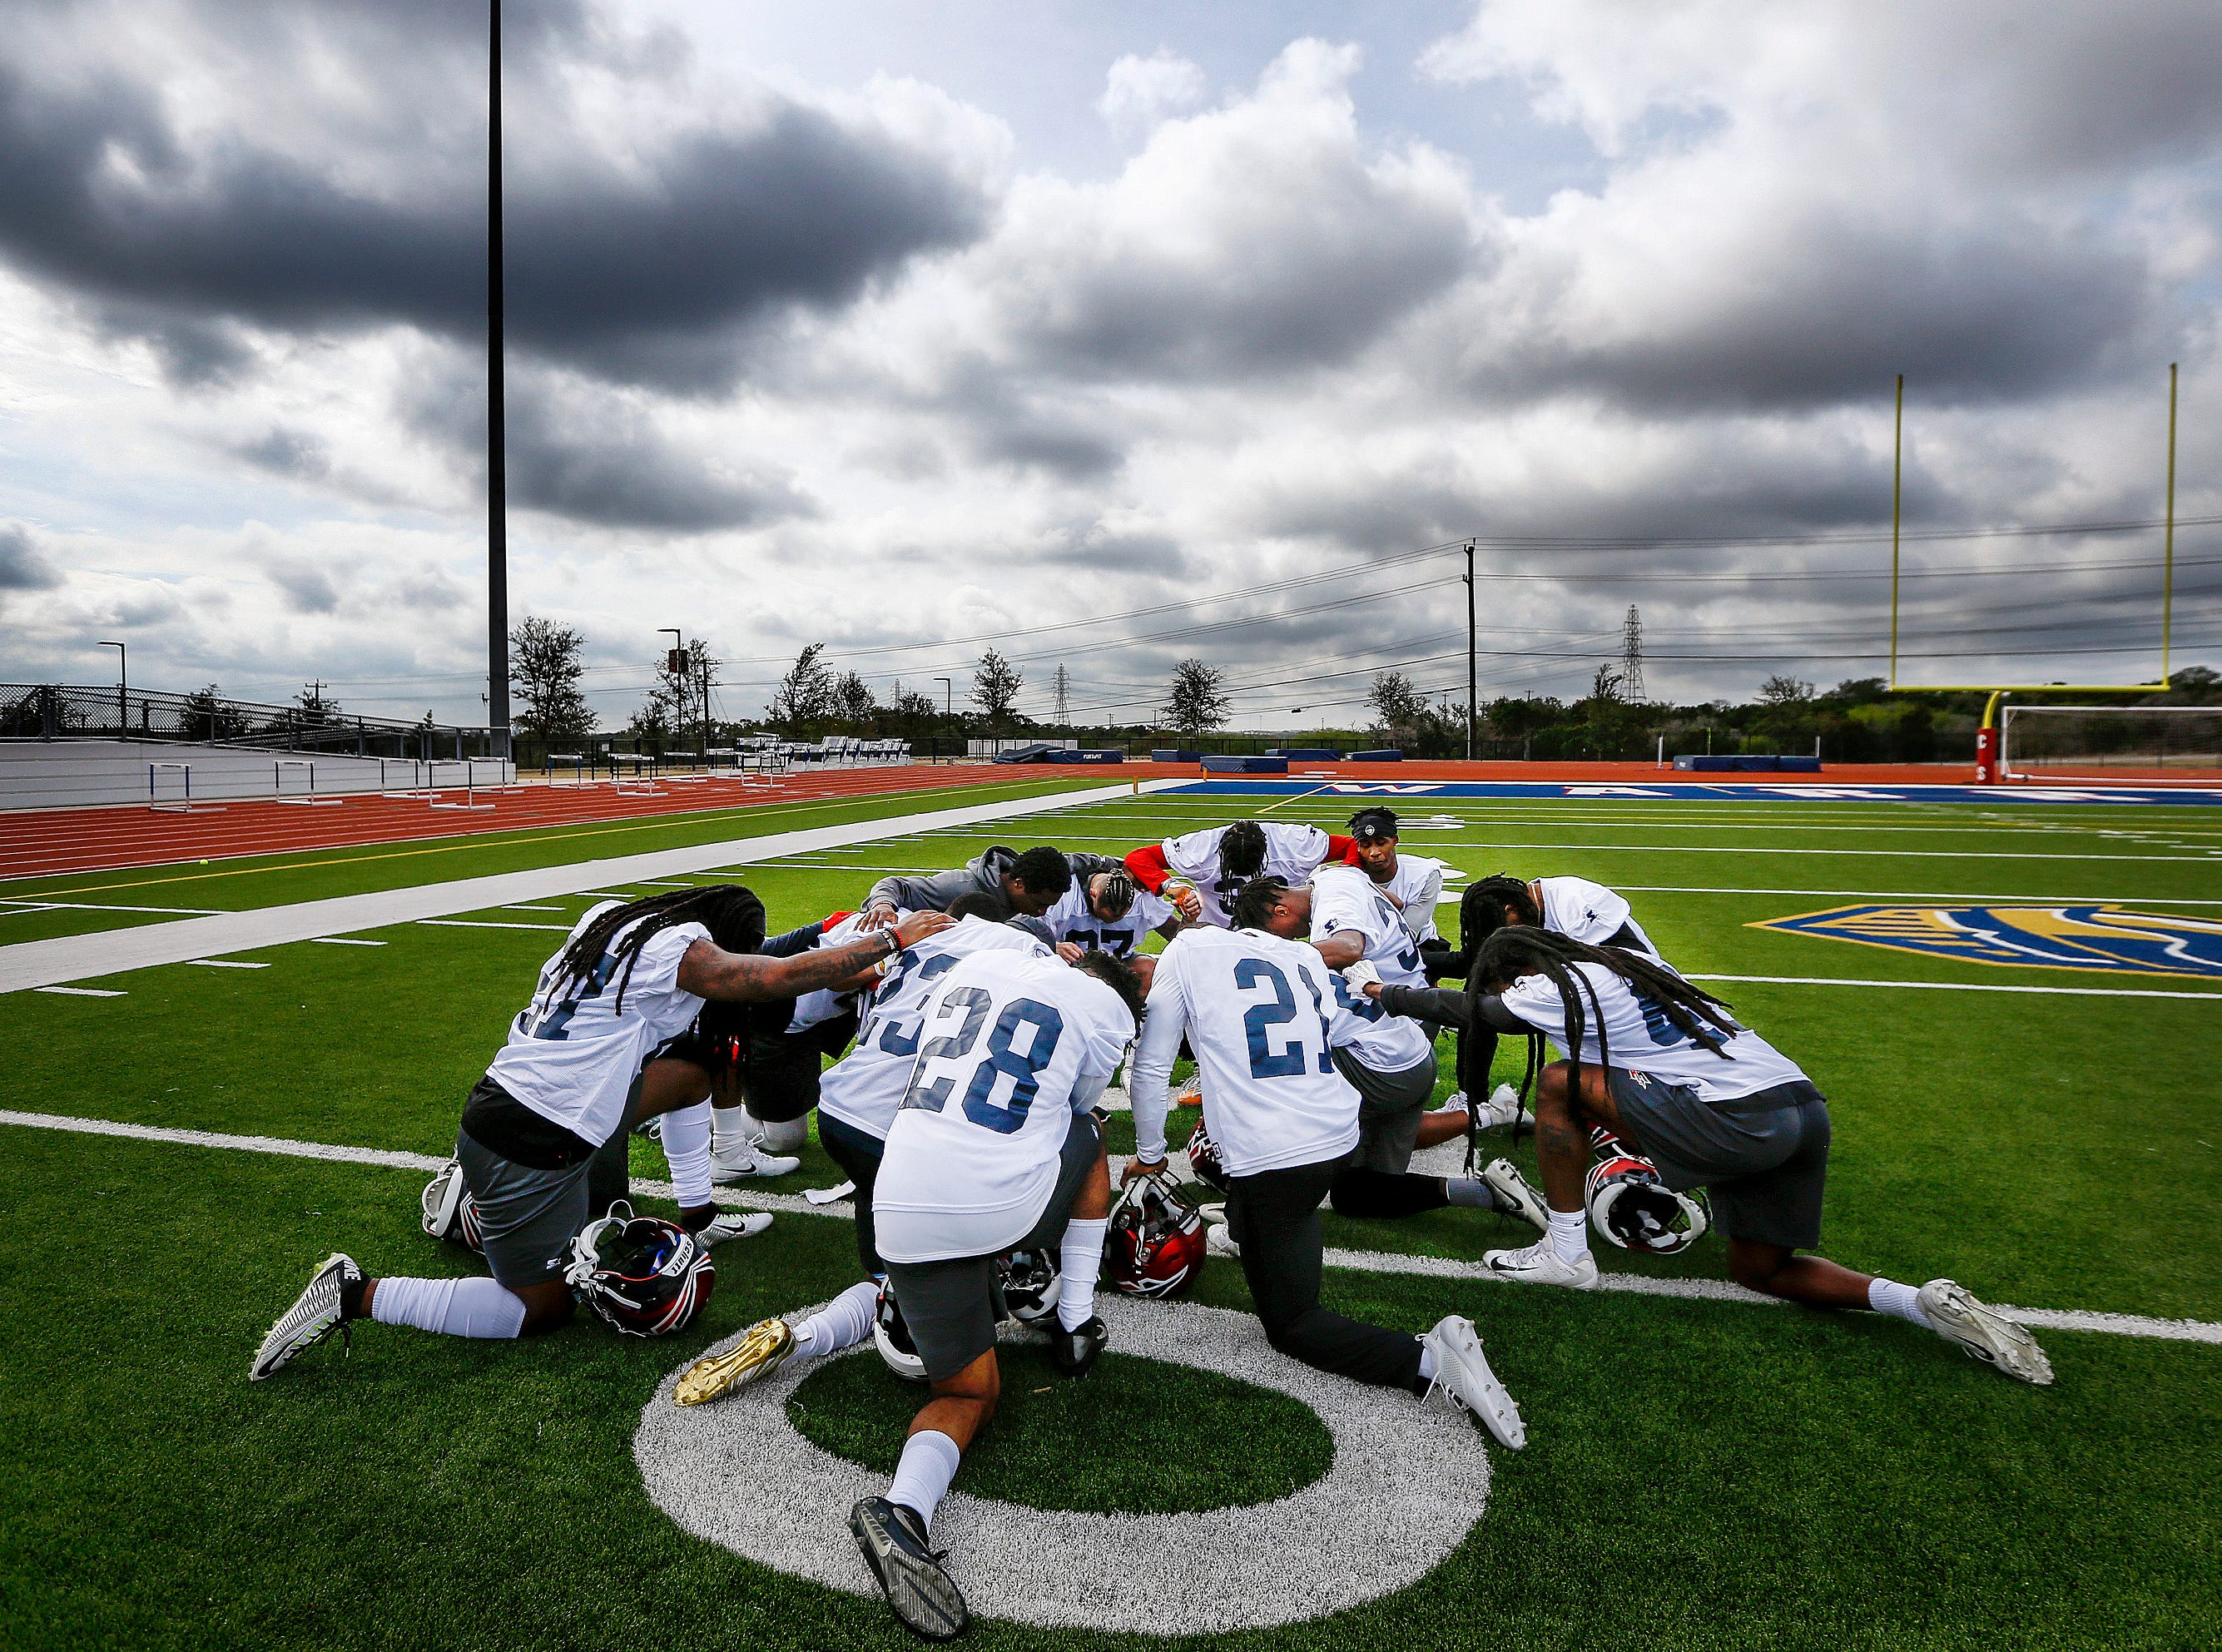 Under cloudy Texas skies, defensive teammates of the Memphis Express football team huddle up for a prayer after morning practice during training camp. Players with the eight teams of the Alliance of American Football league are in San Antonio for a month-long training camp. The Express will play their first game Sunday, Feb. 10th in Birmingham.